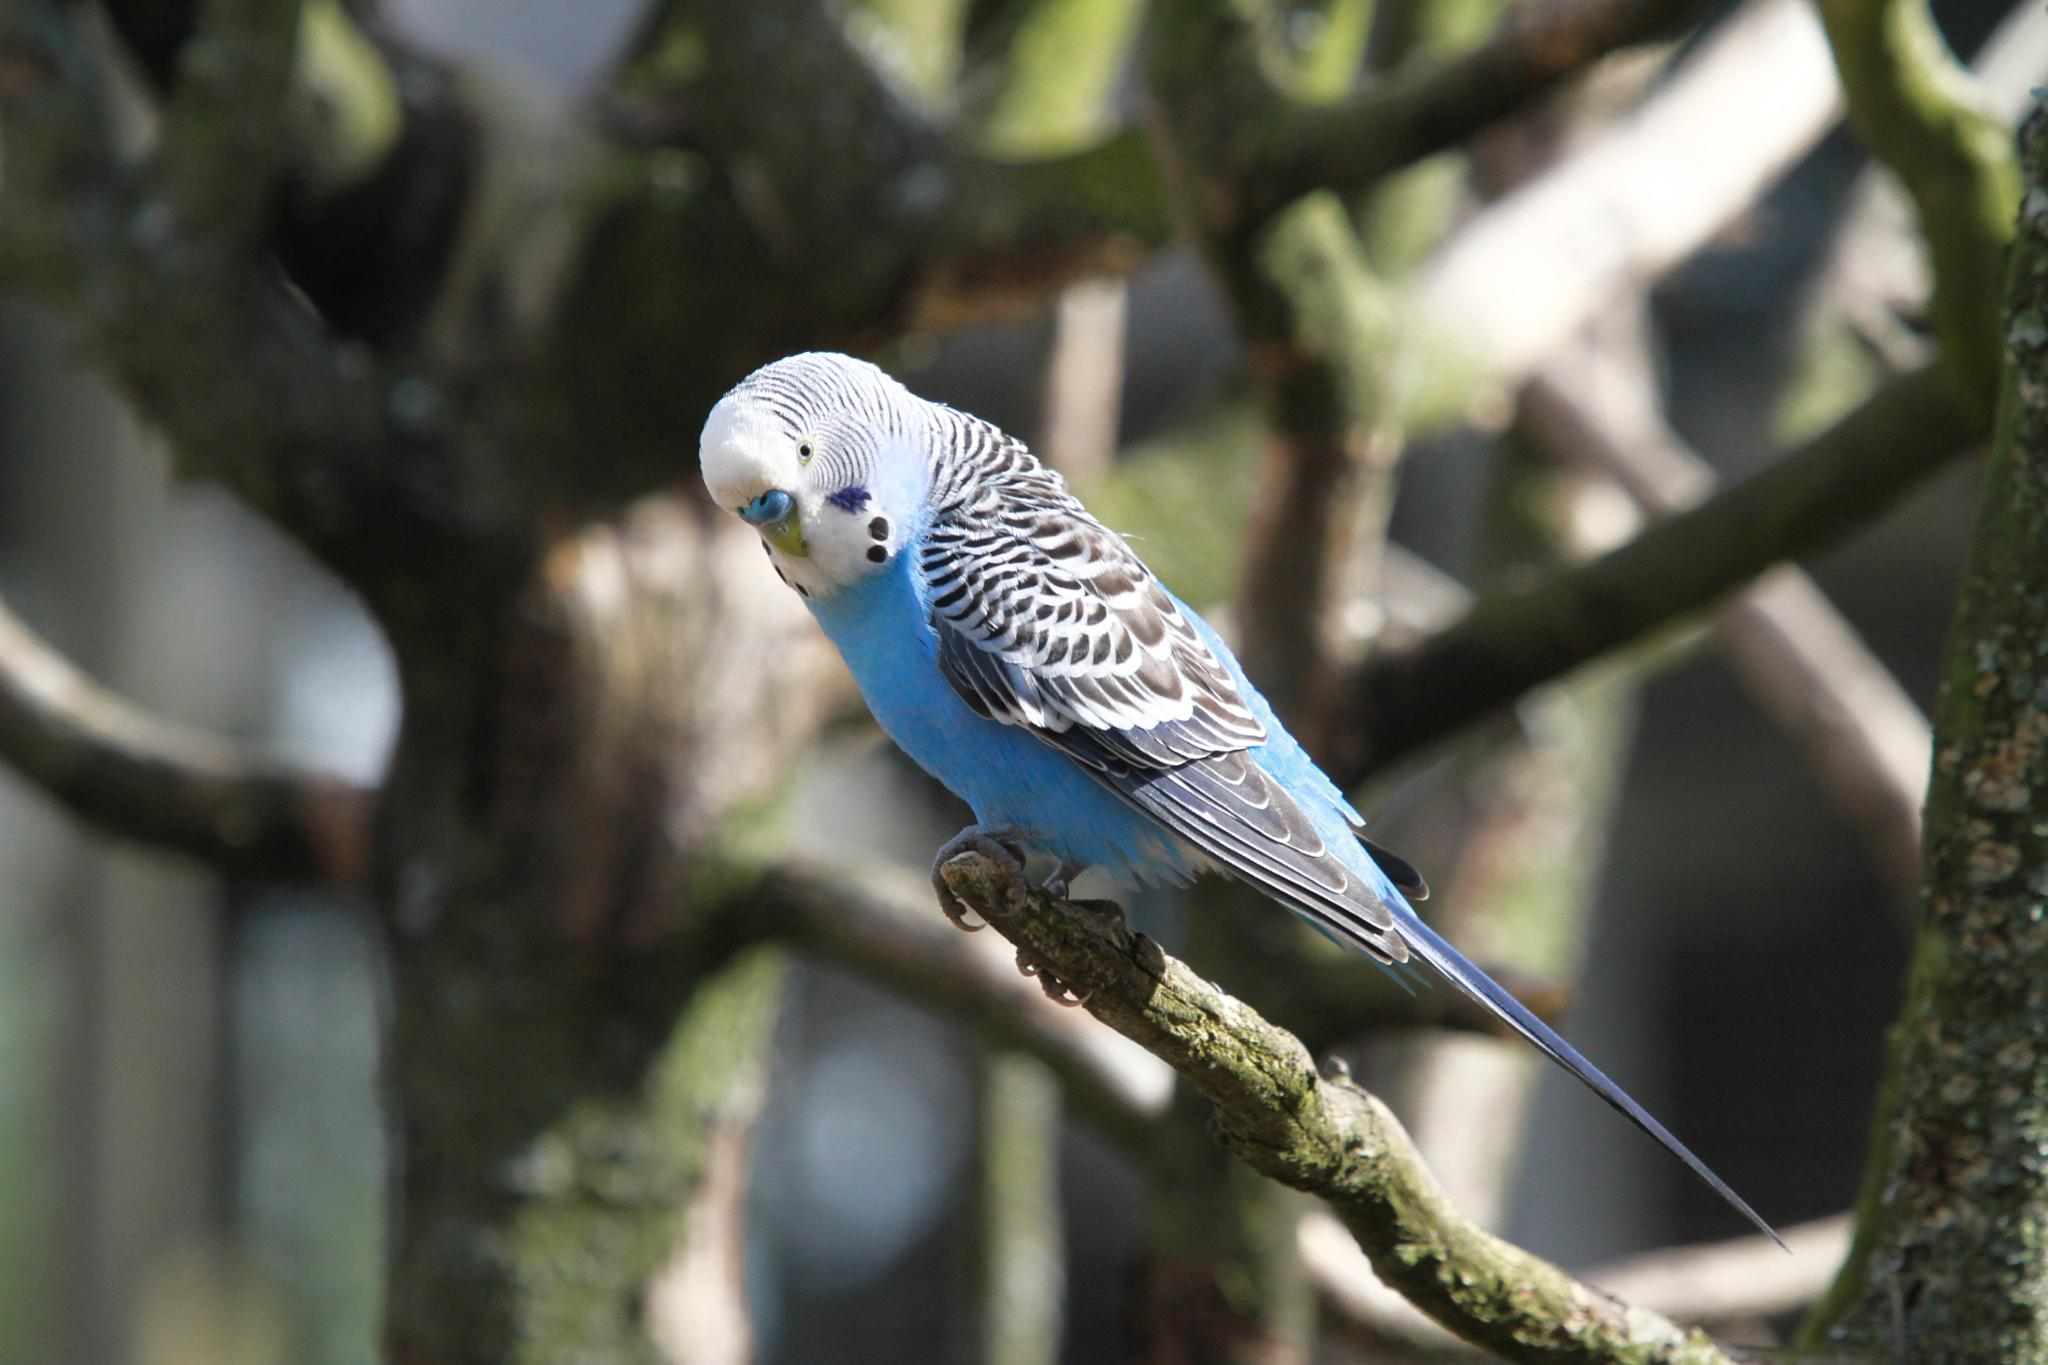 parakeets by emmanuel liegeois